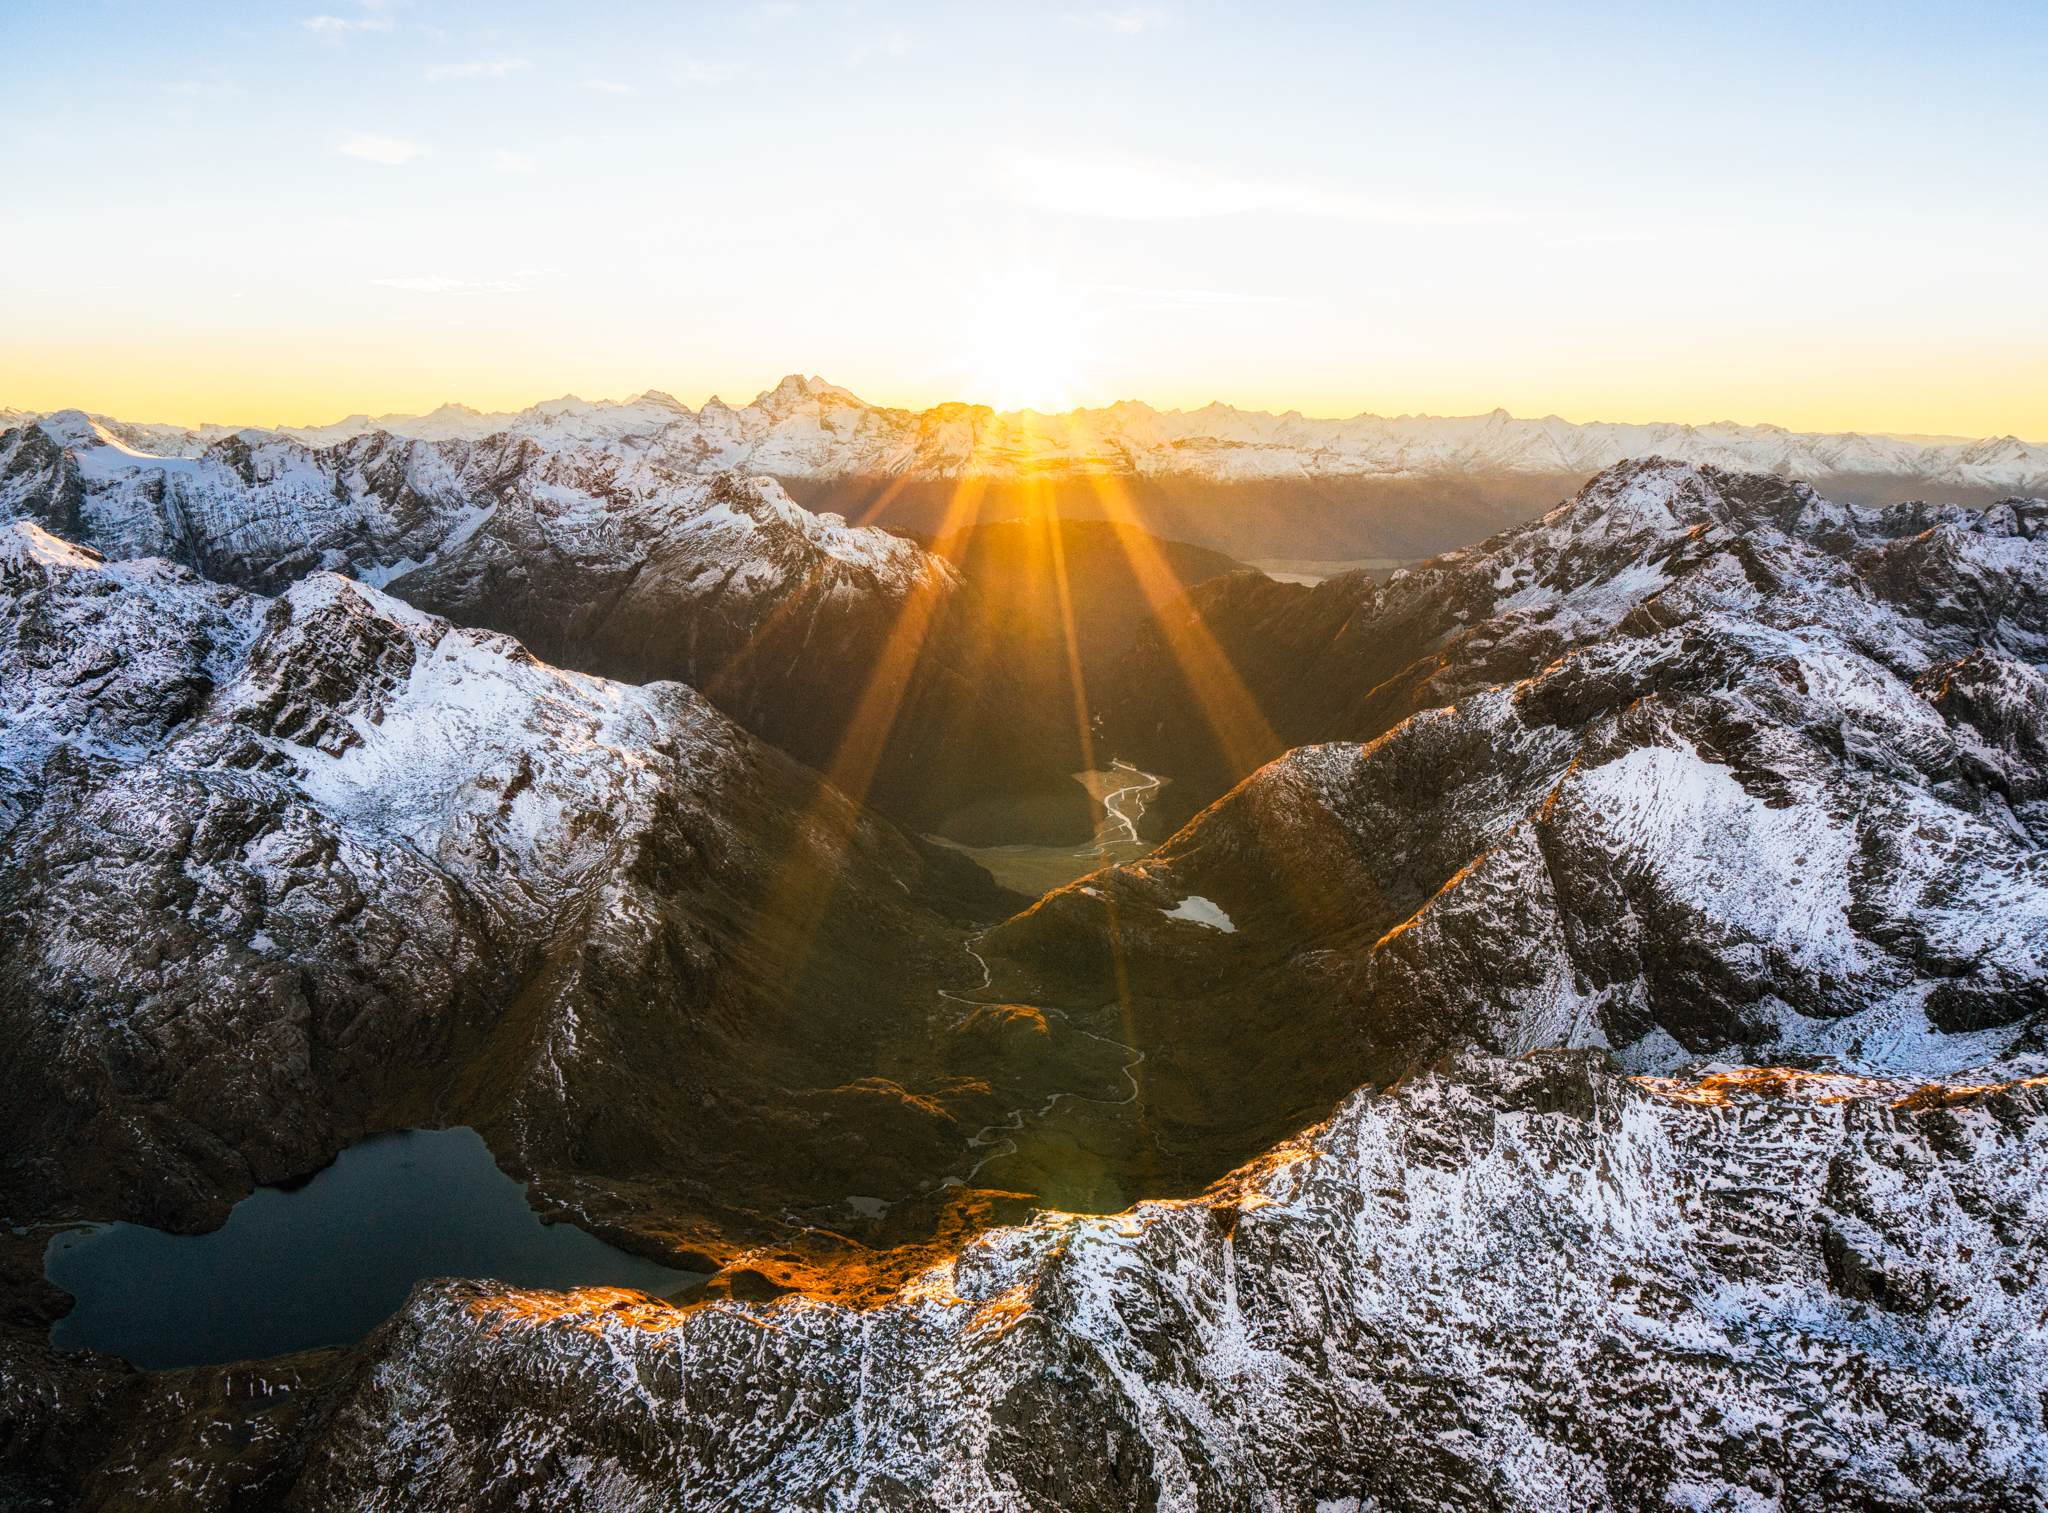 The Routeburn Track is one of the most scenic hikes in all of New Zealand, seen from the sky at sunrise it's easy to see why. (Talman Madsen)